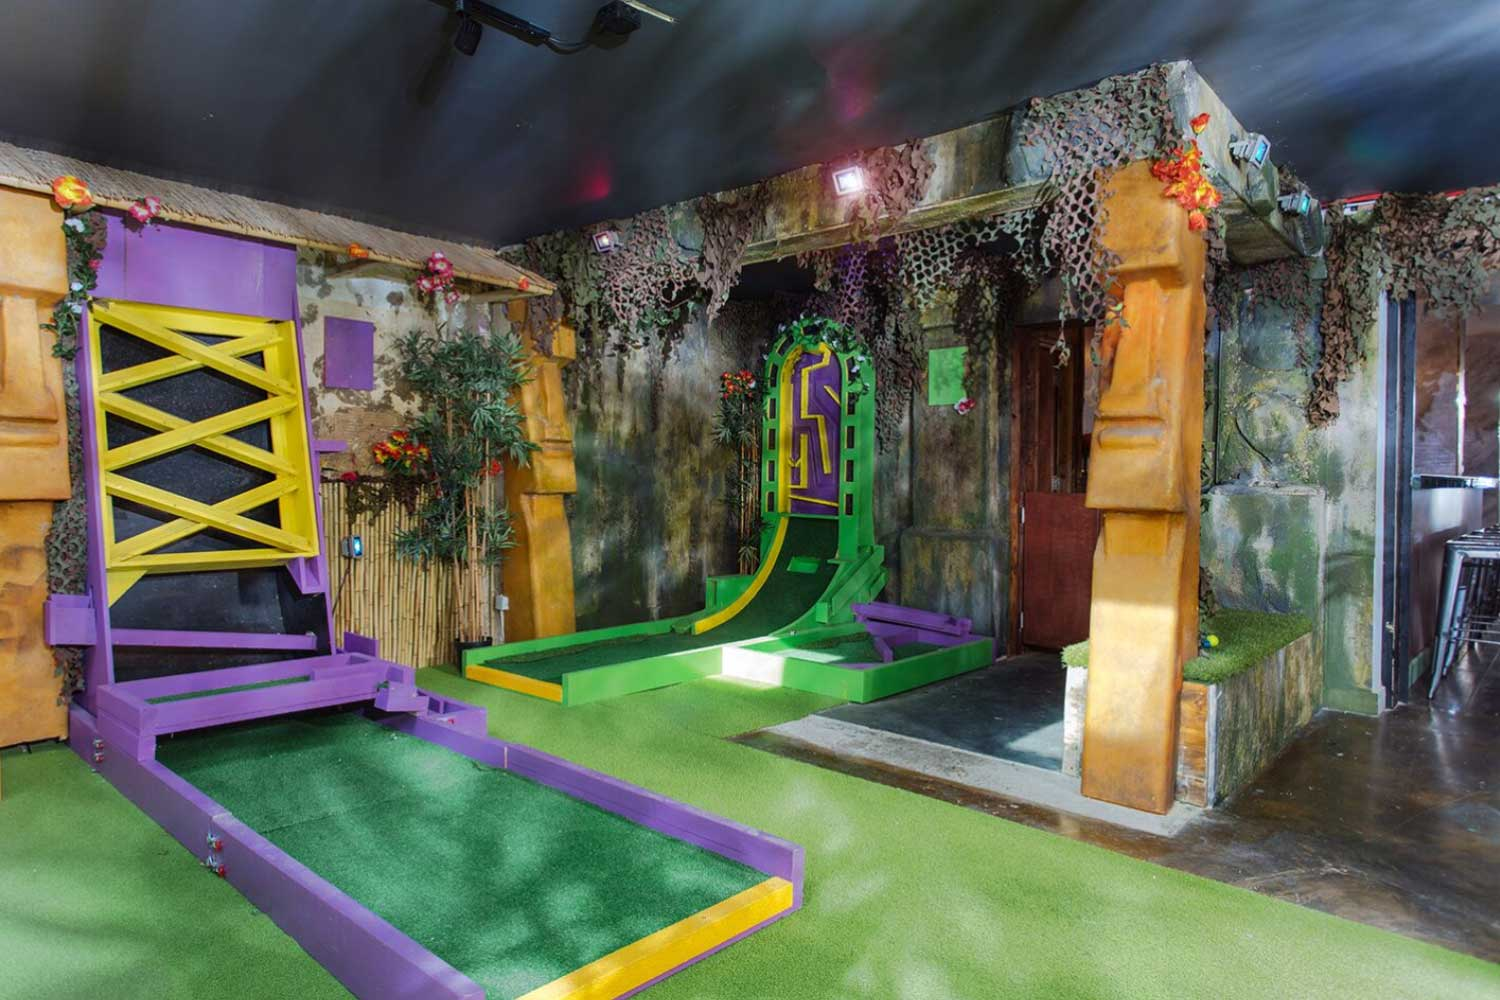 hoxton crazy golf course